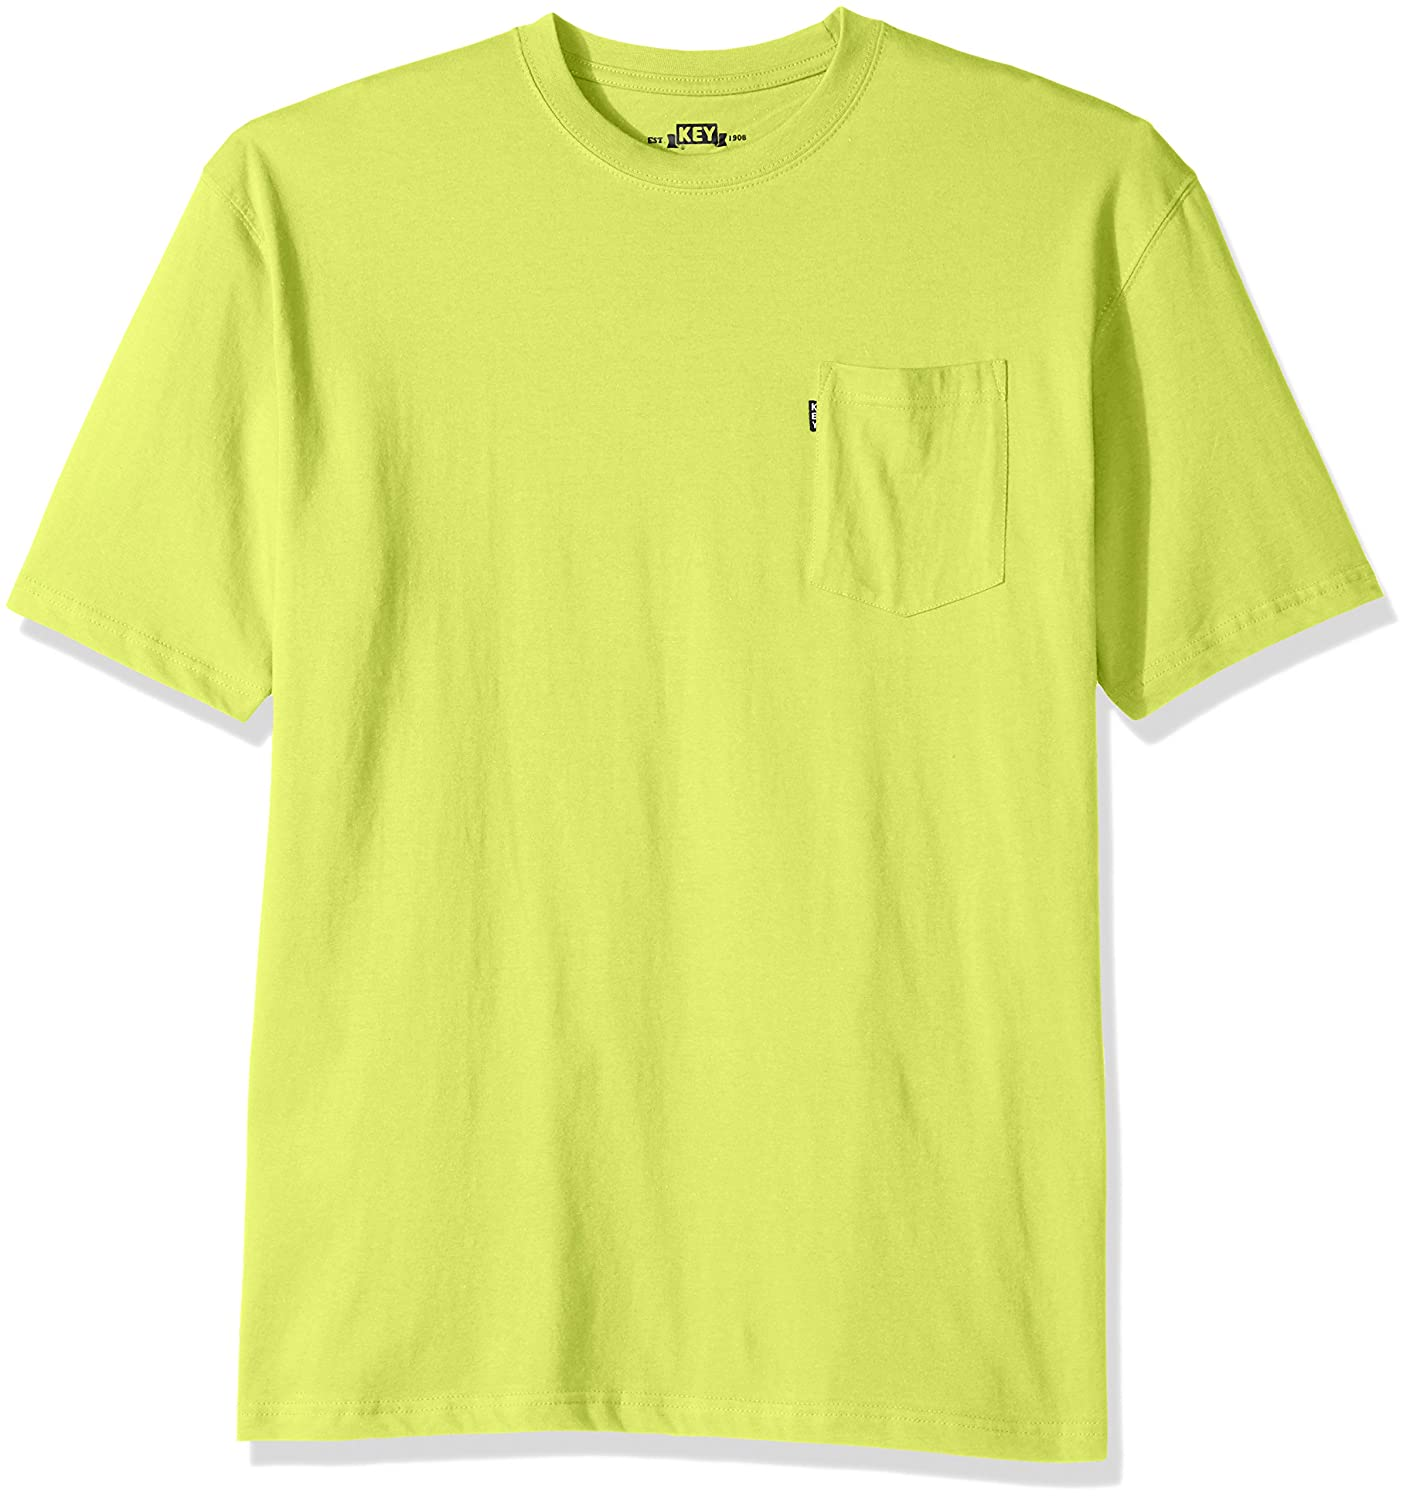 Key Apparel Men's Blended Tee Big and Tall 822BT